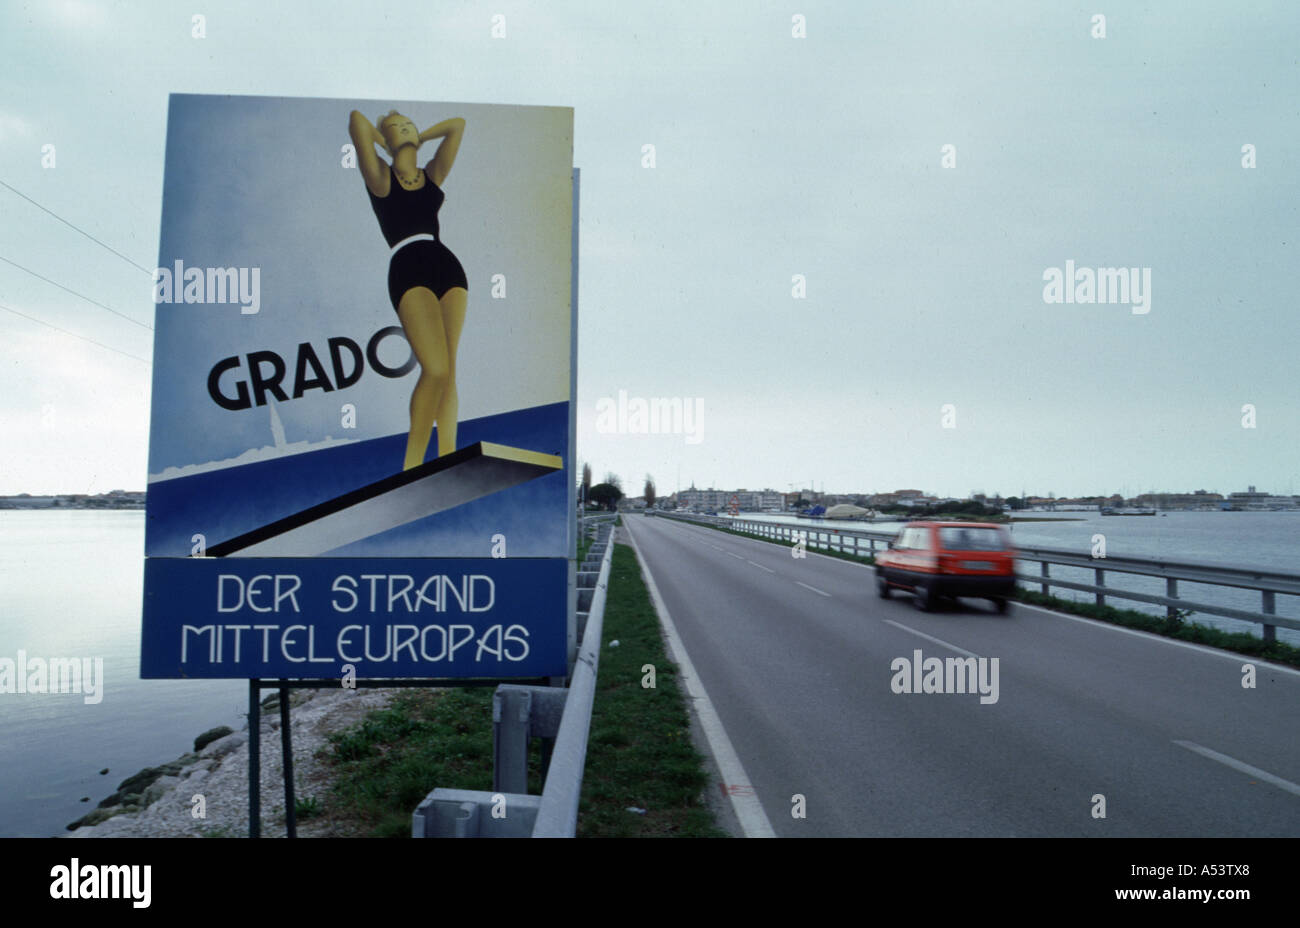 Ad for the beach of Grado with a pin up girl - Stock Image